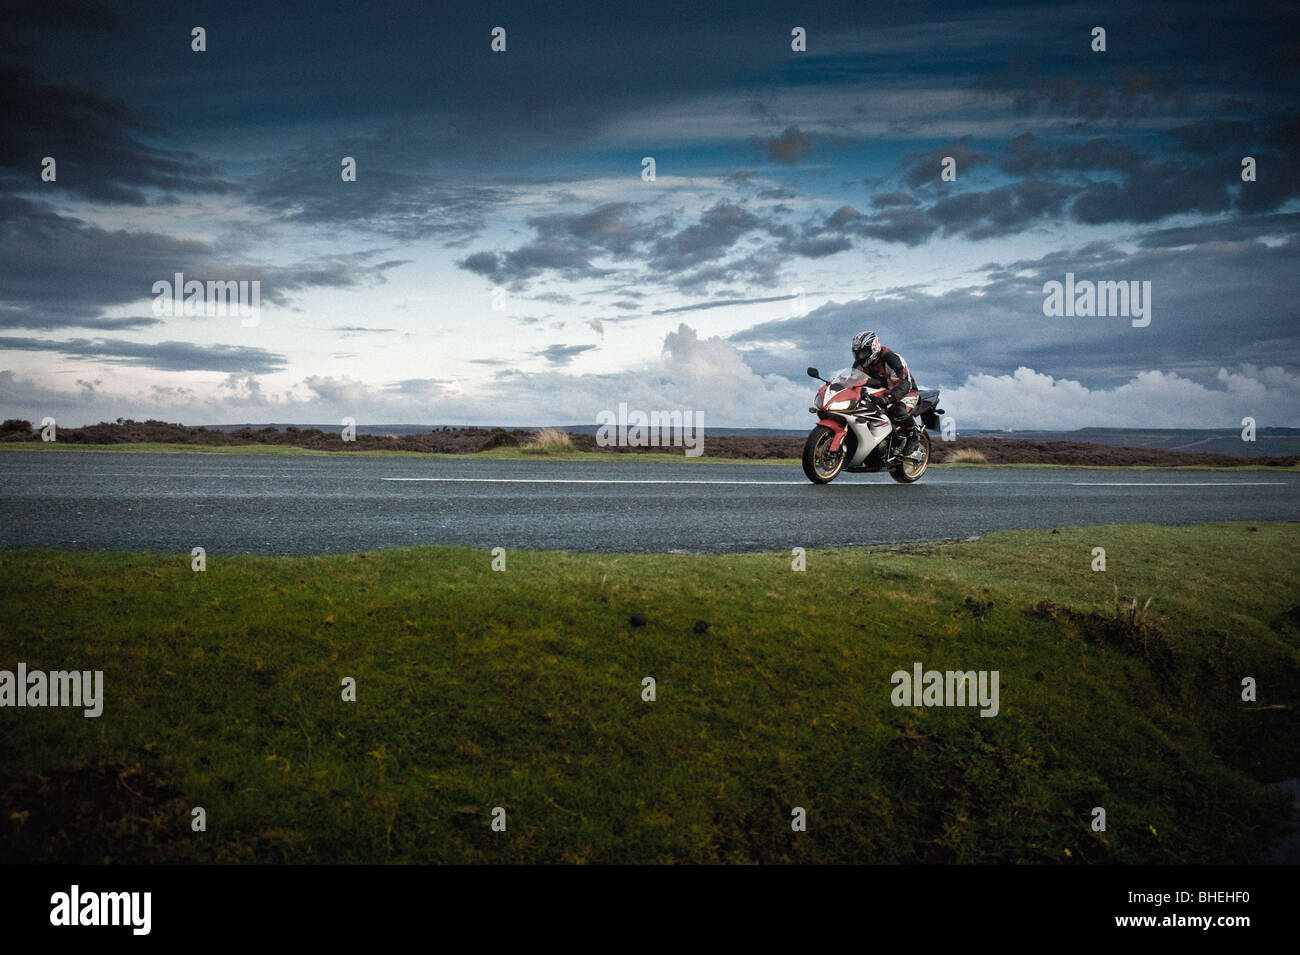 Side view of motorbike and rider on road, North Yorkshire Moors, UK - Stock Image